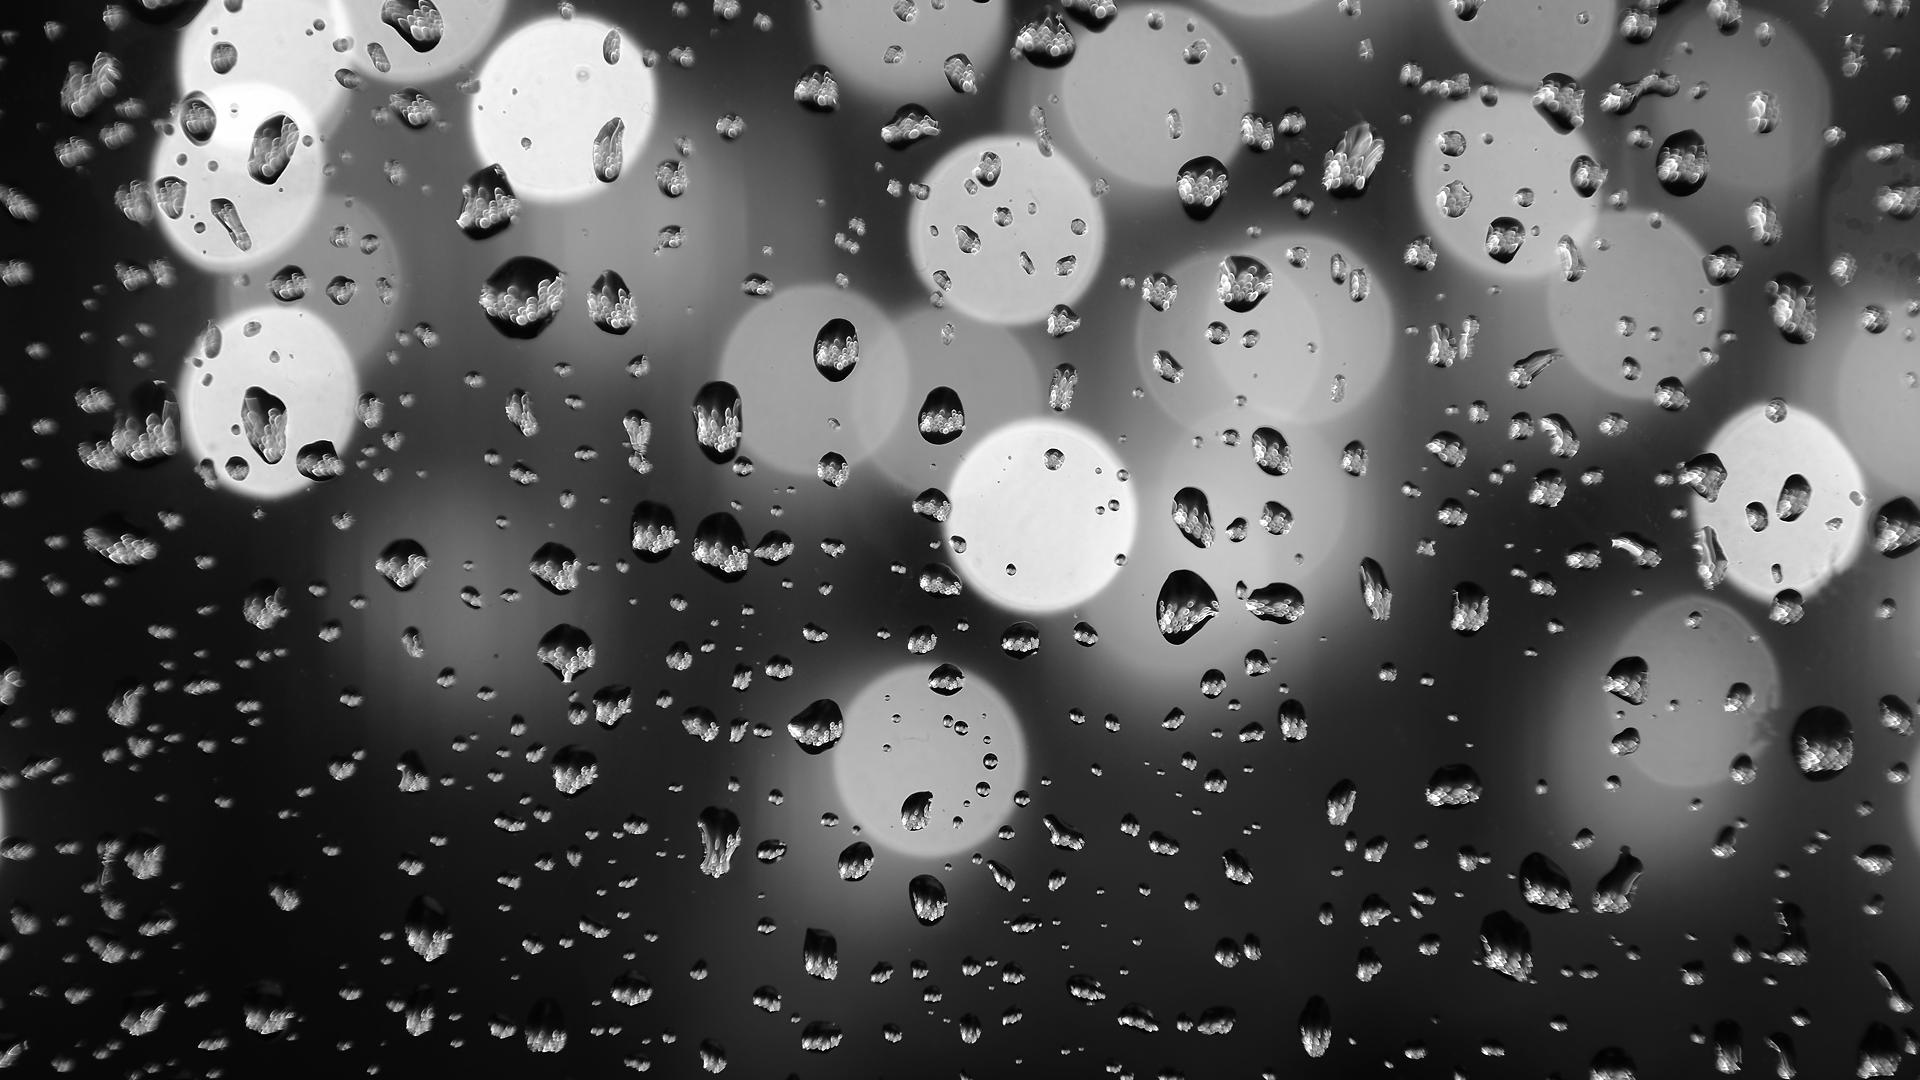 Rain On Window Wallpapers - Wallpaper Cave